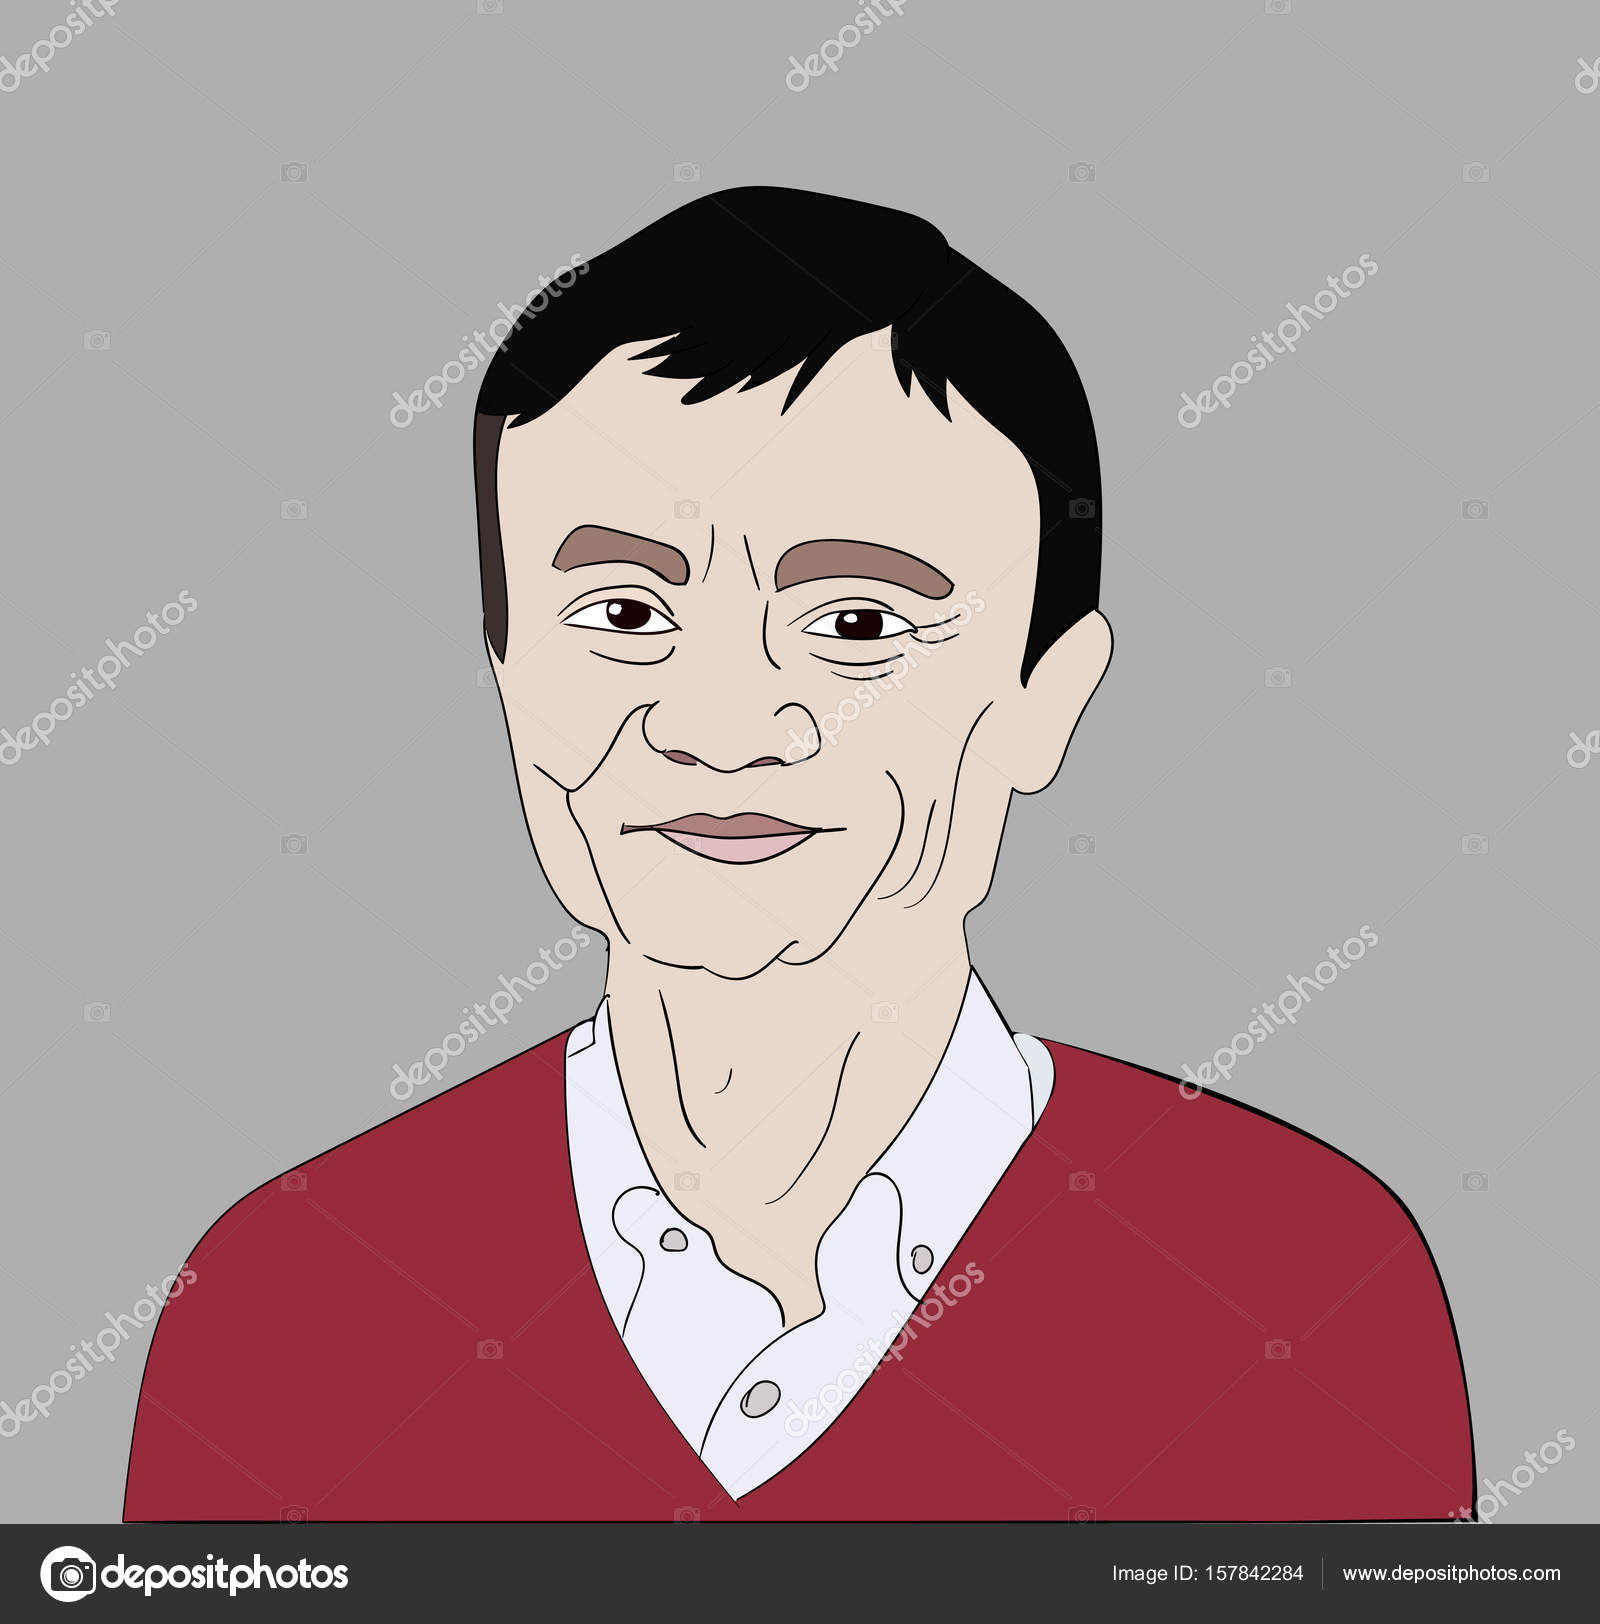 June 2017 Ceo And Entrepreneur Jack Ma Vector Portrait On A Gray